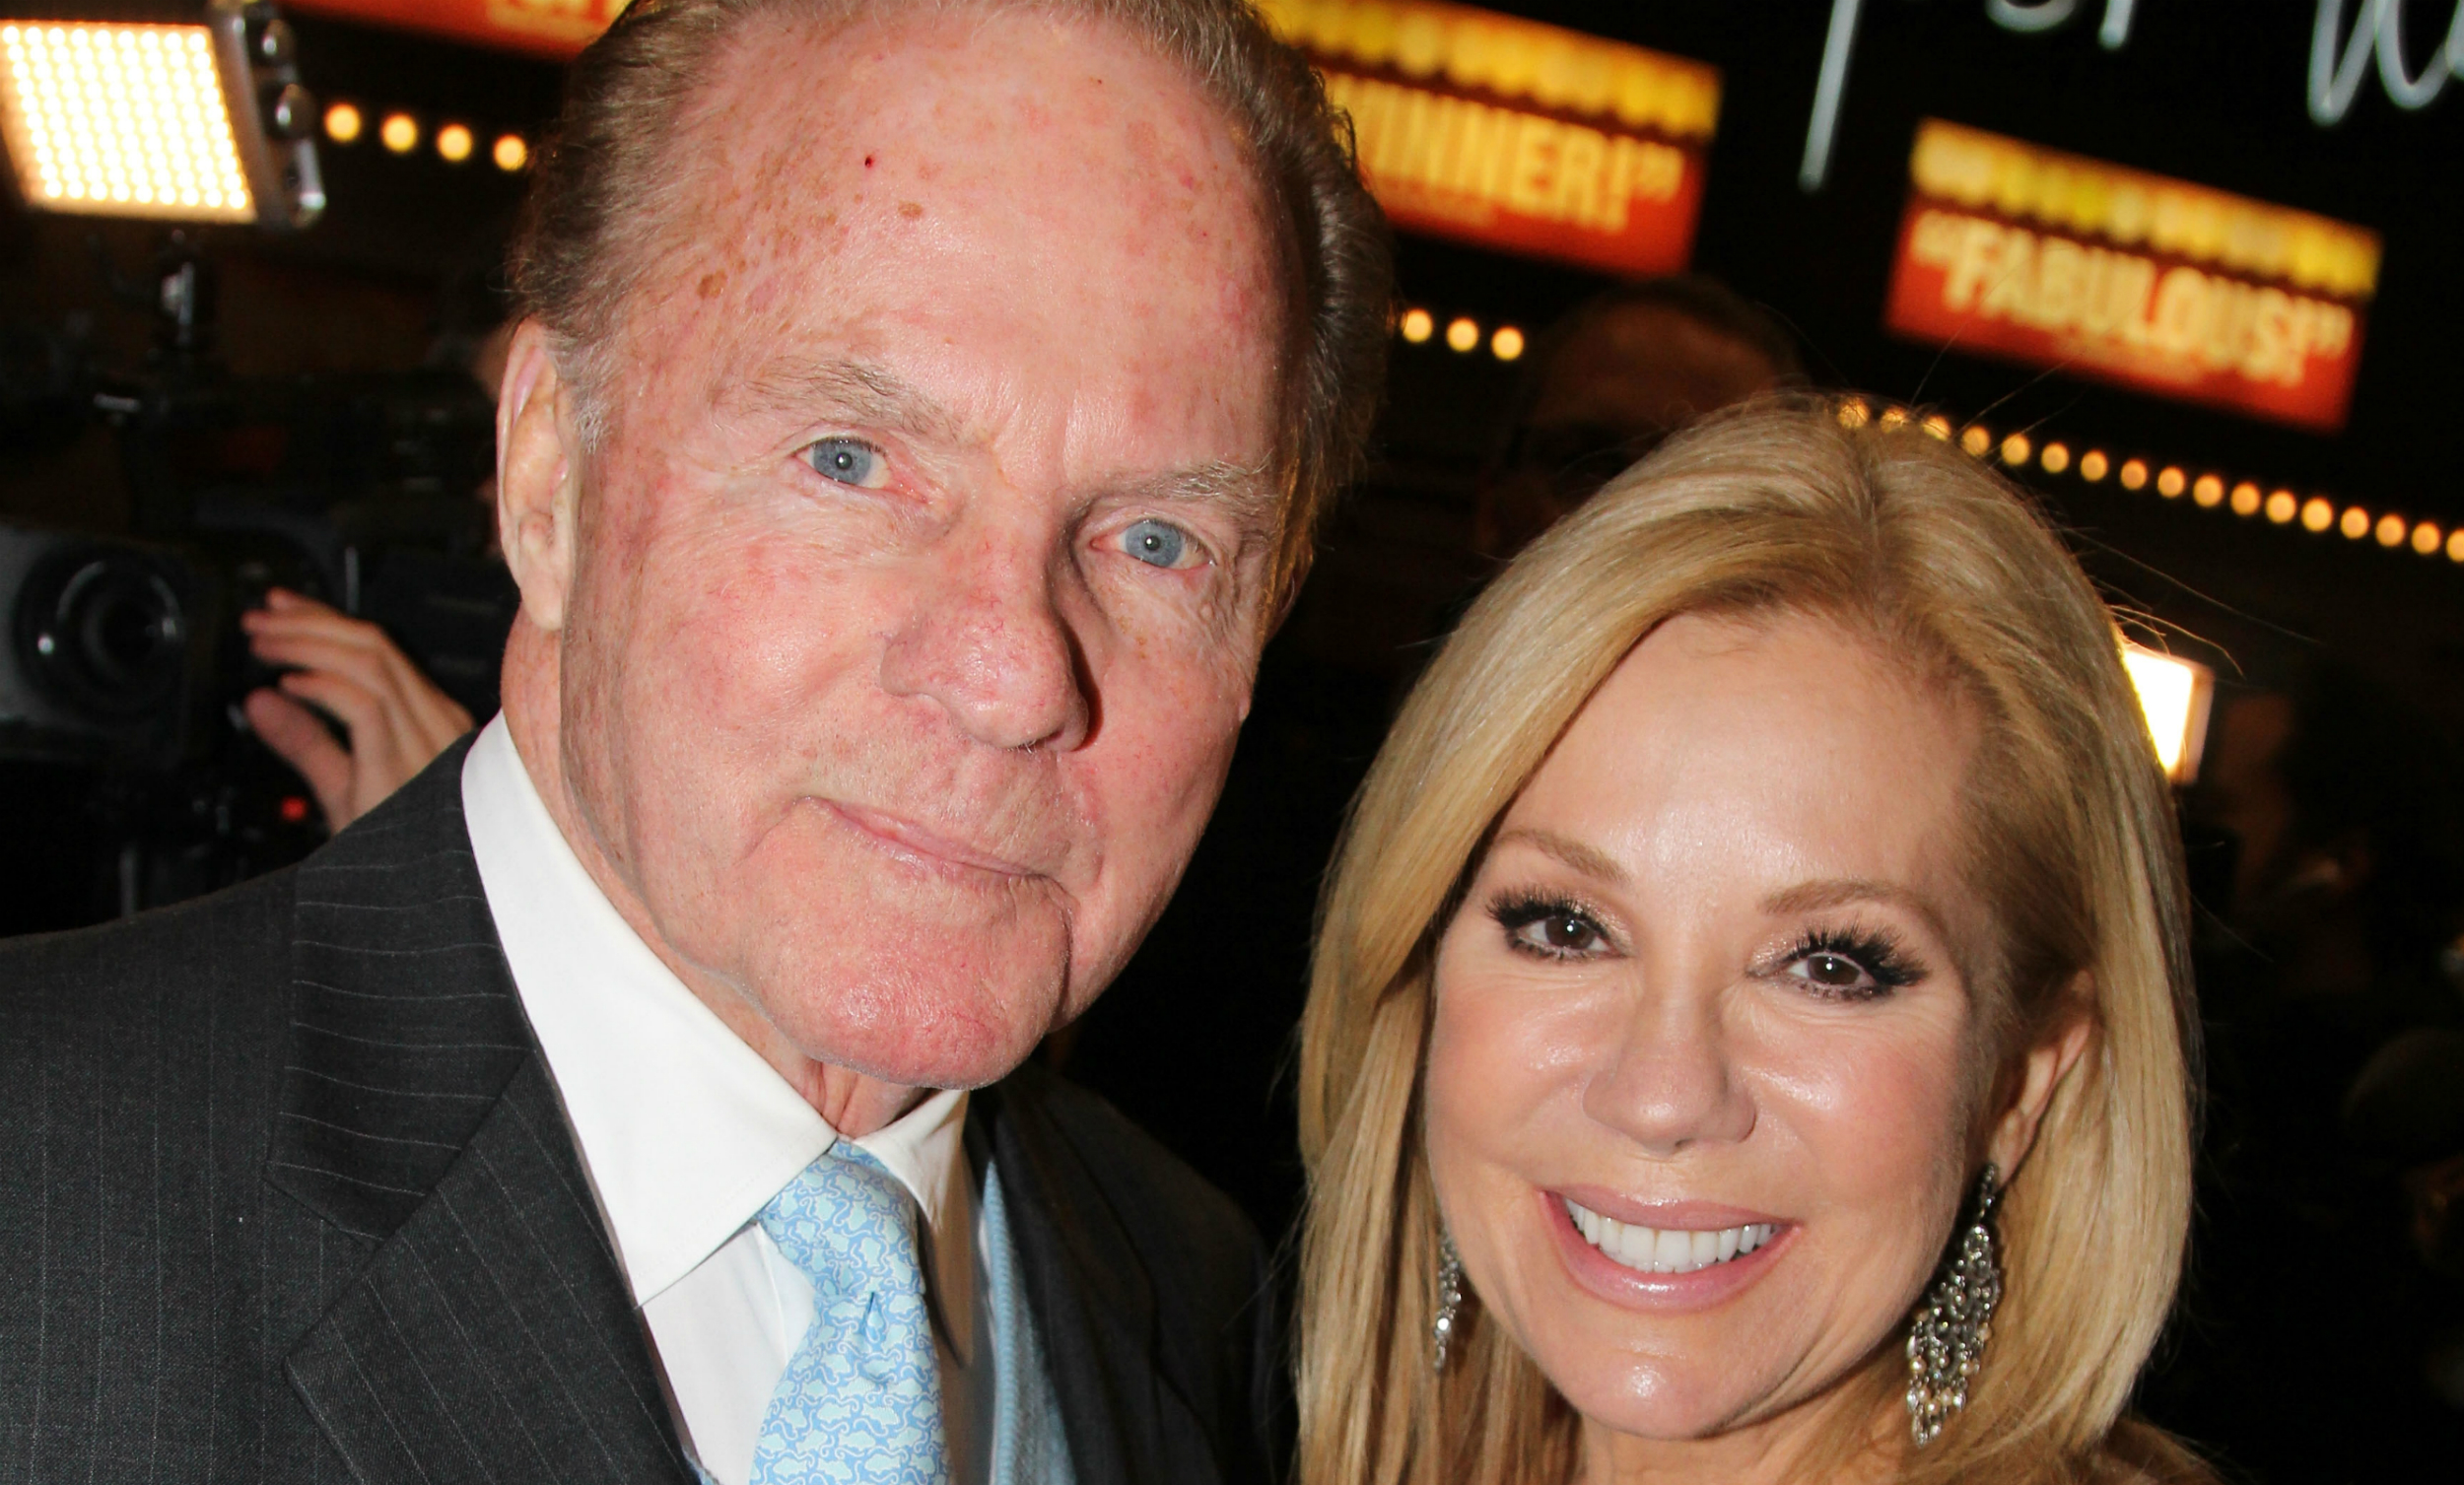 Frank Gifford Husband Of Kathie Lee Gifford Dies At 84